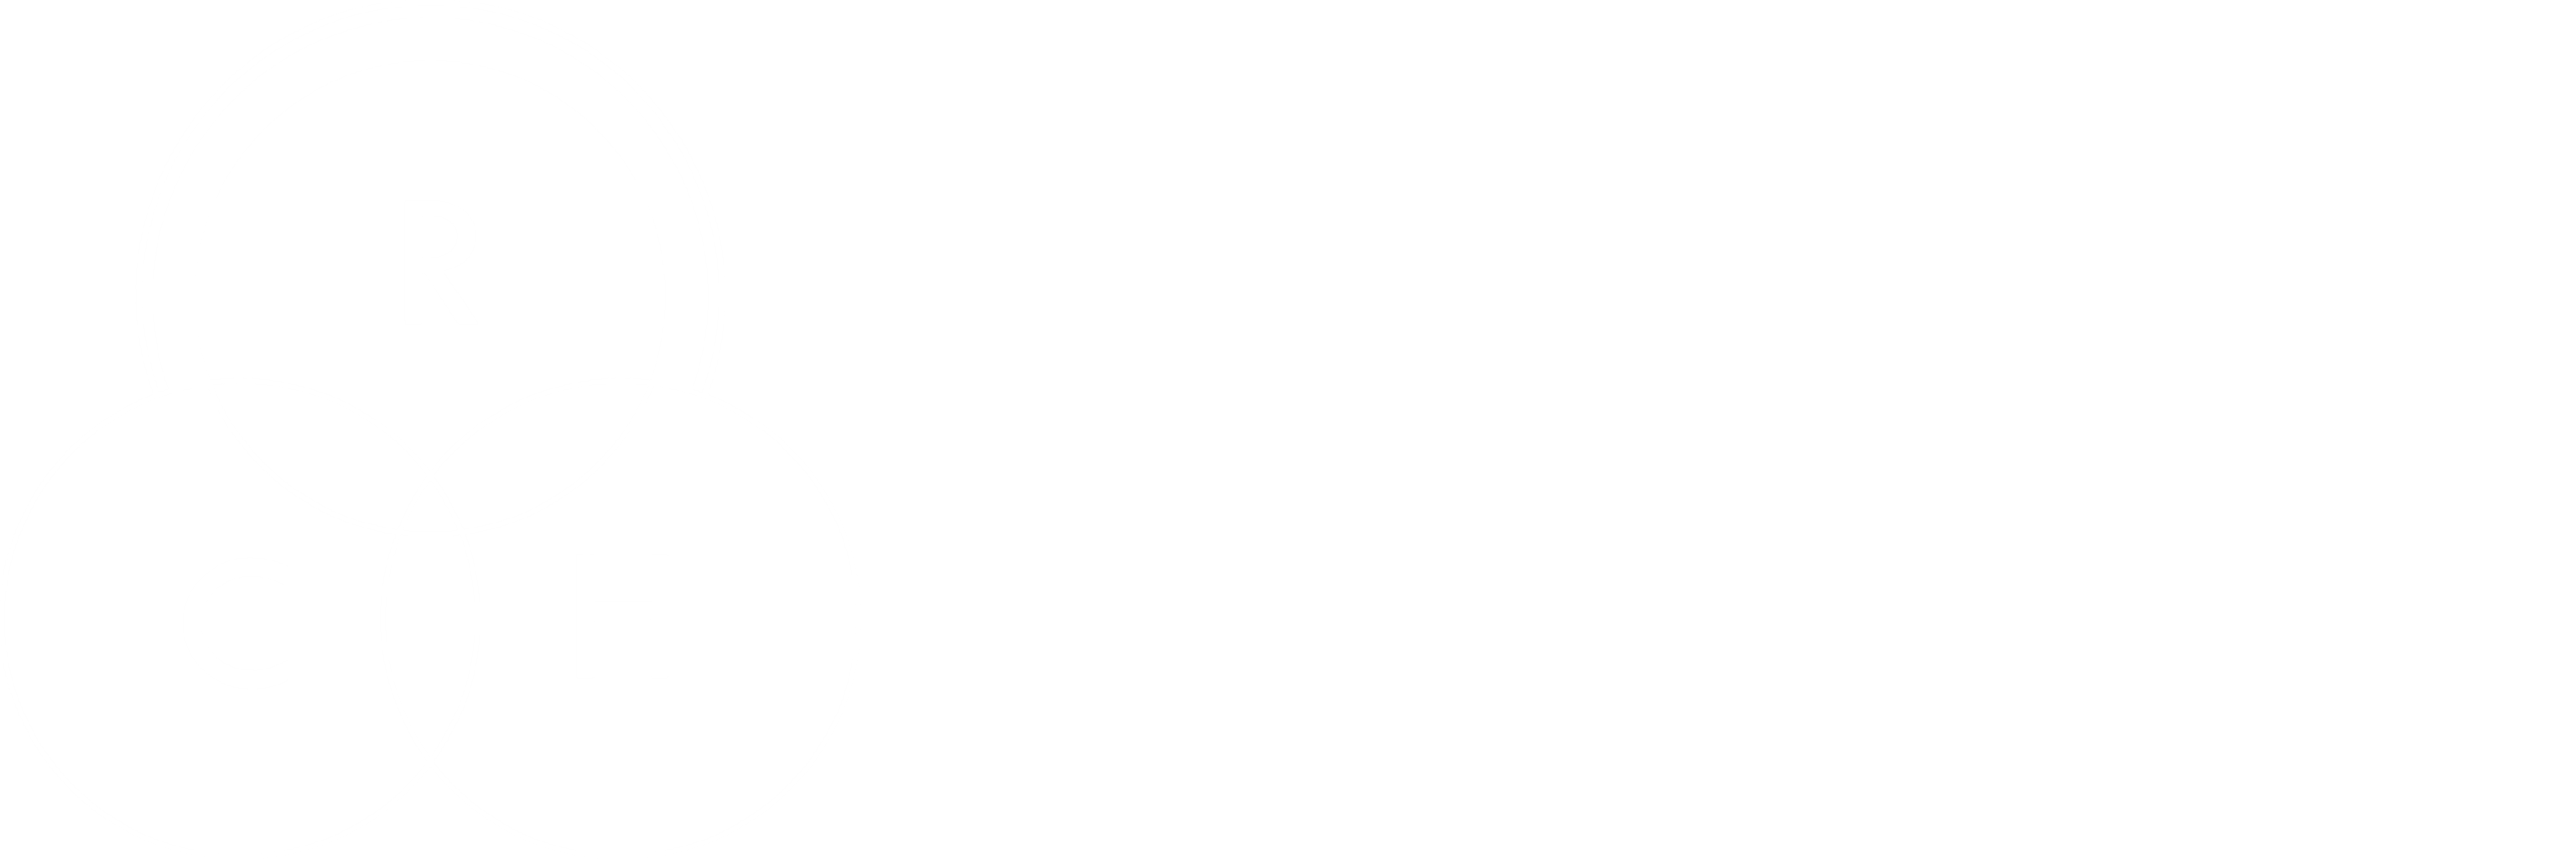 Responsive Caregivers of Hawaii